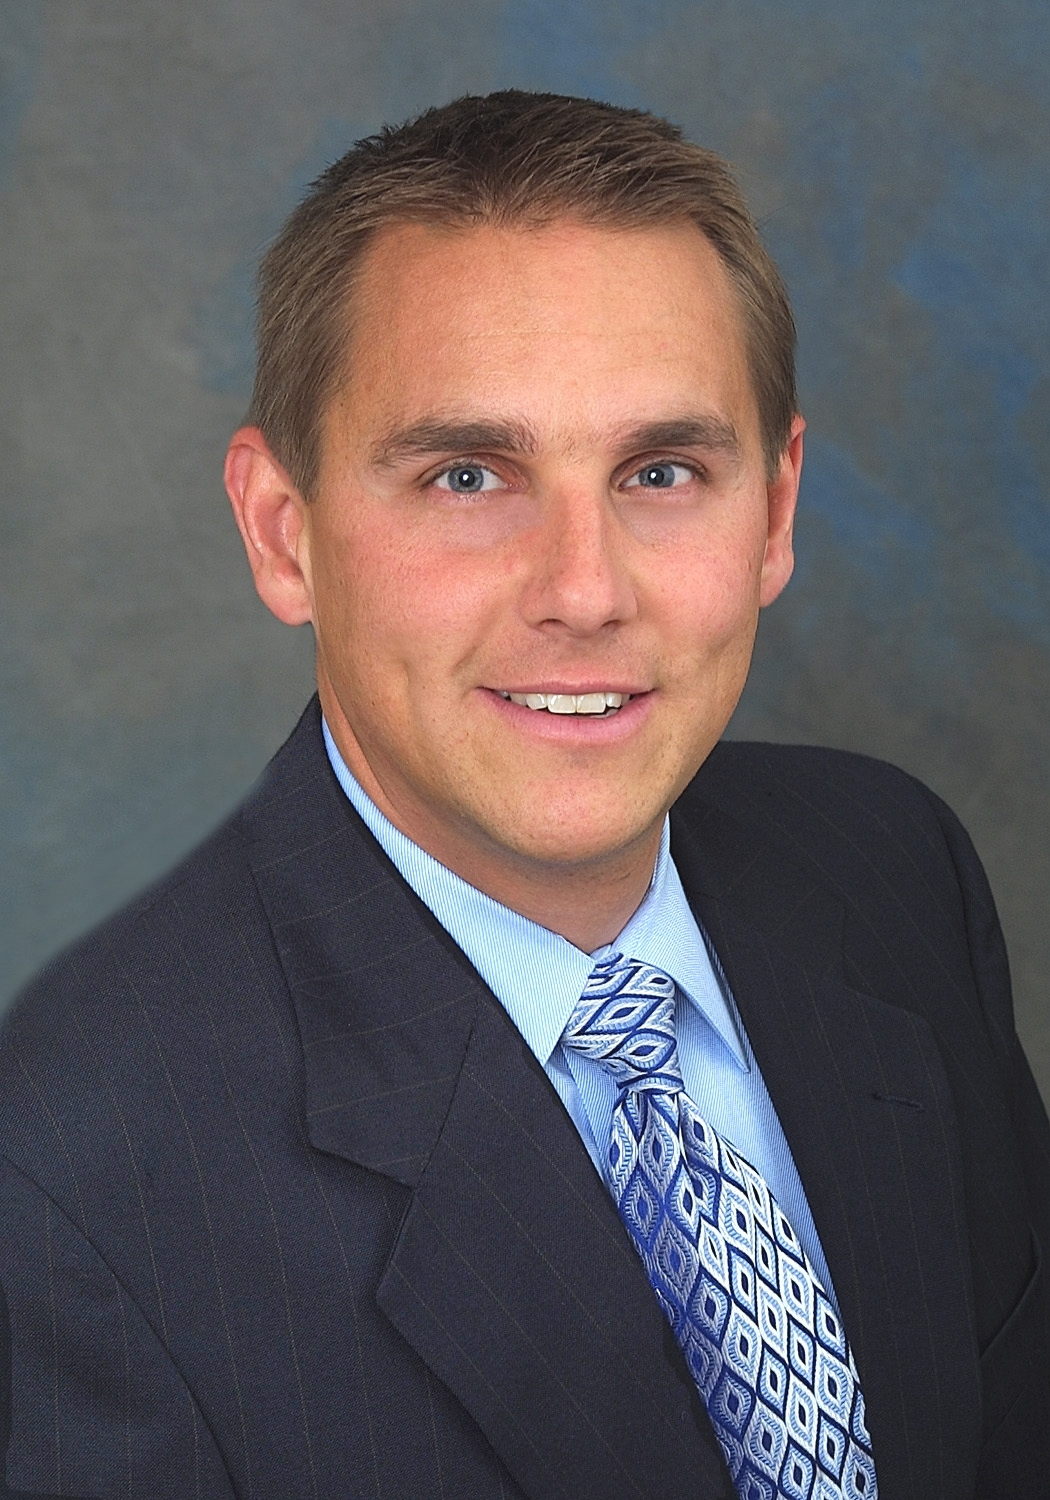 Ryan Wibberley, Financial Advisor from Potomac, Maryland